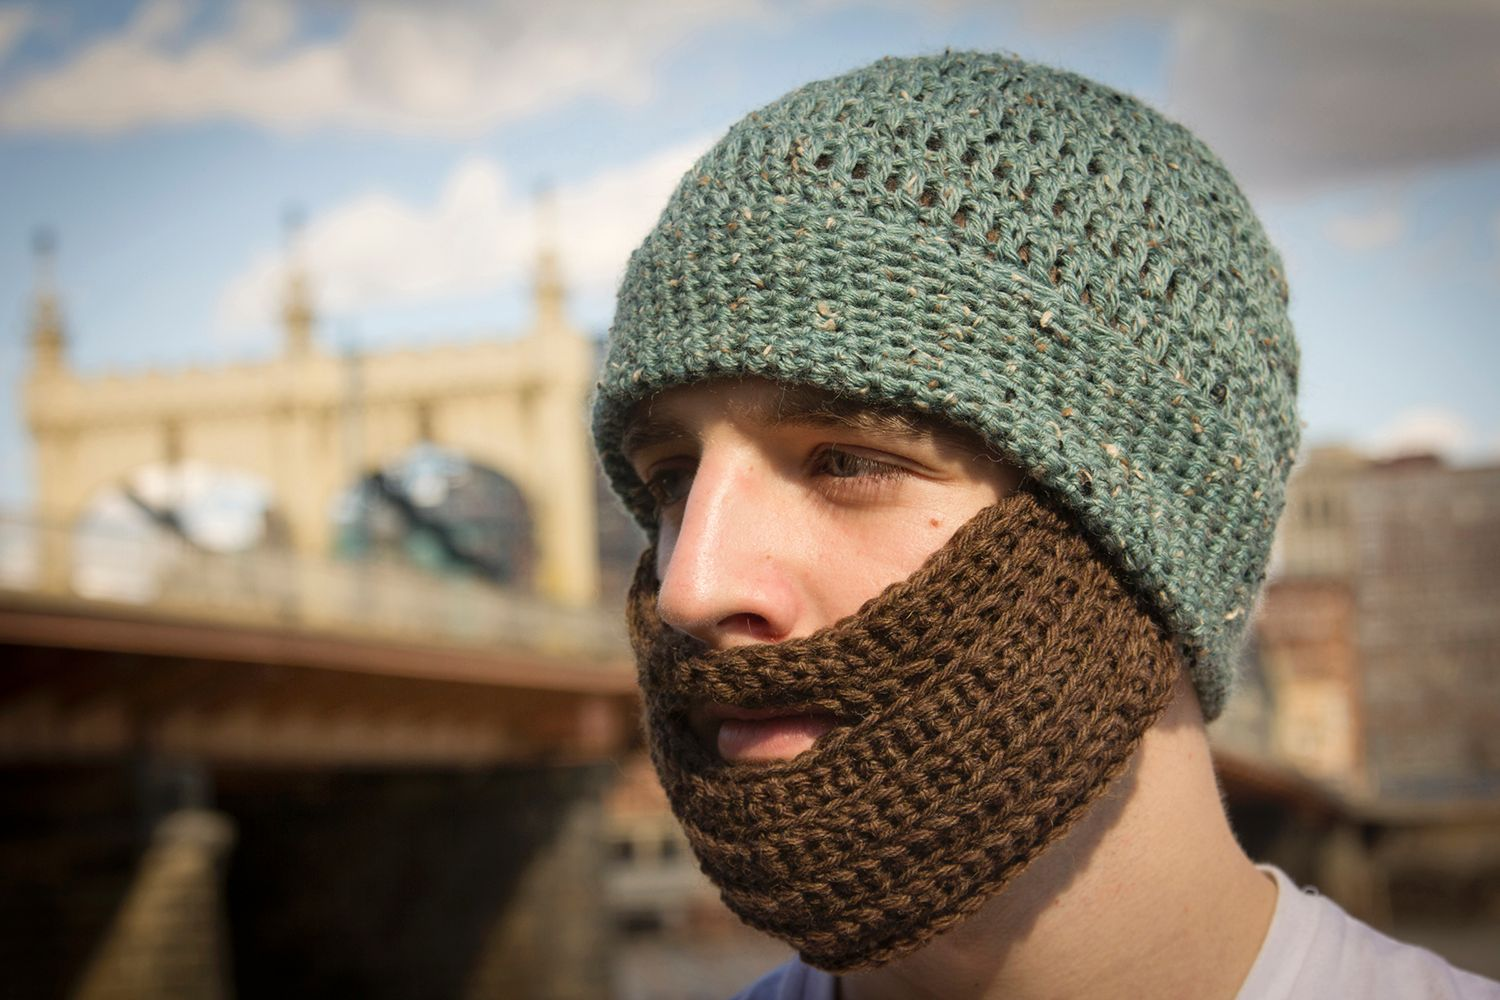 Crochet bearded hat knitting patterns and crochet patterns from home patterns new crochet bearded hat bankloansurffo Images